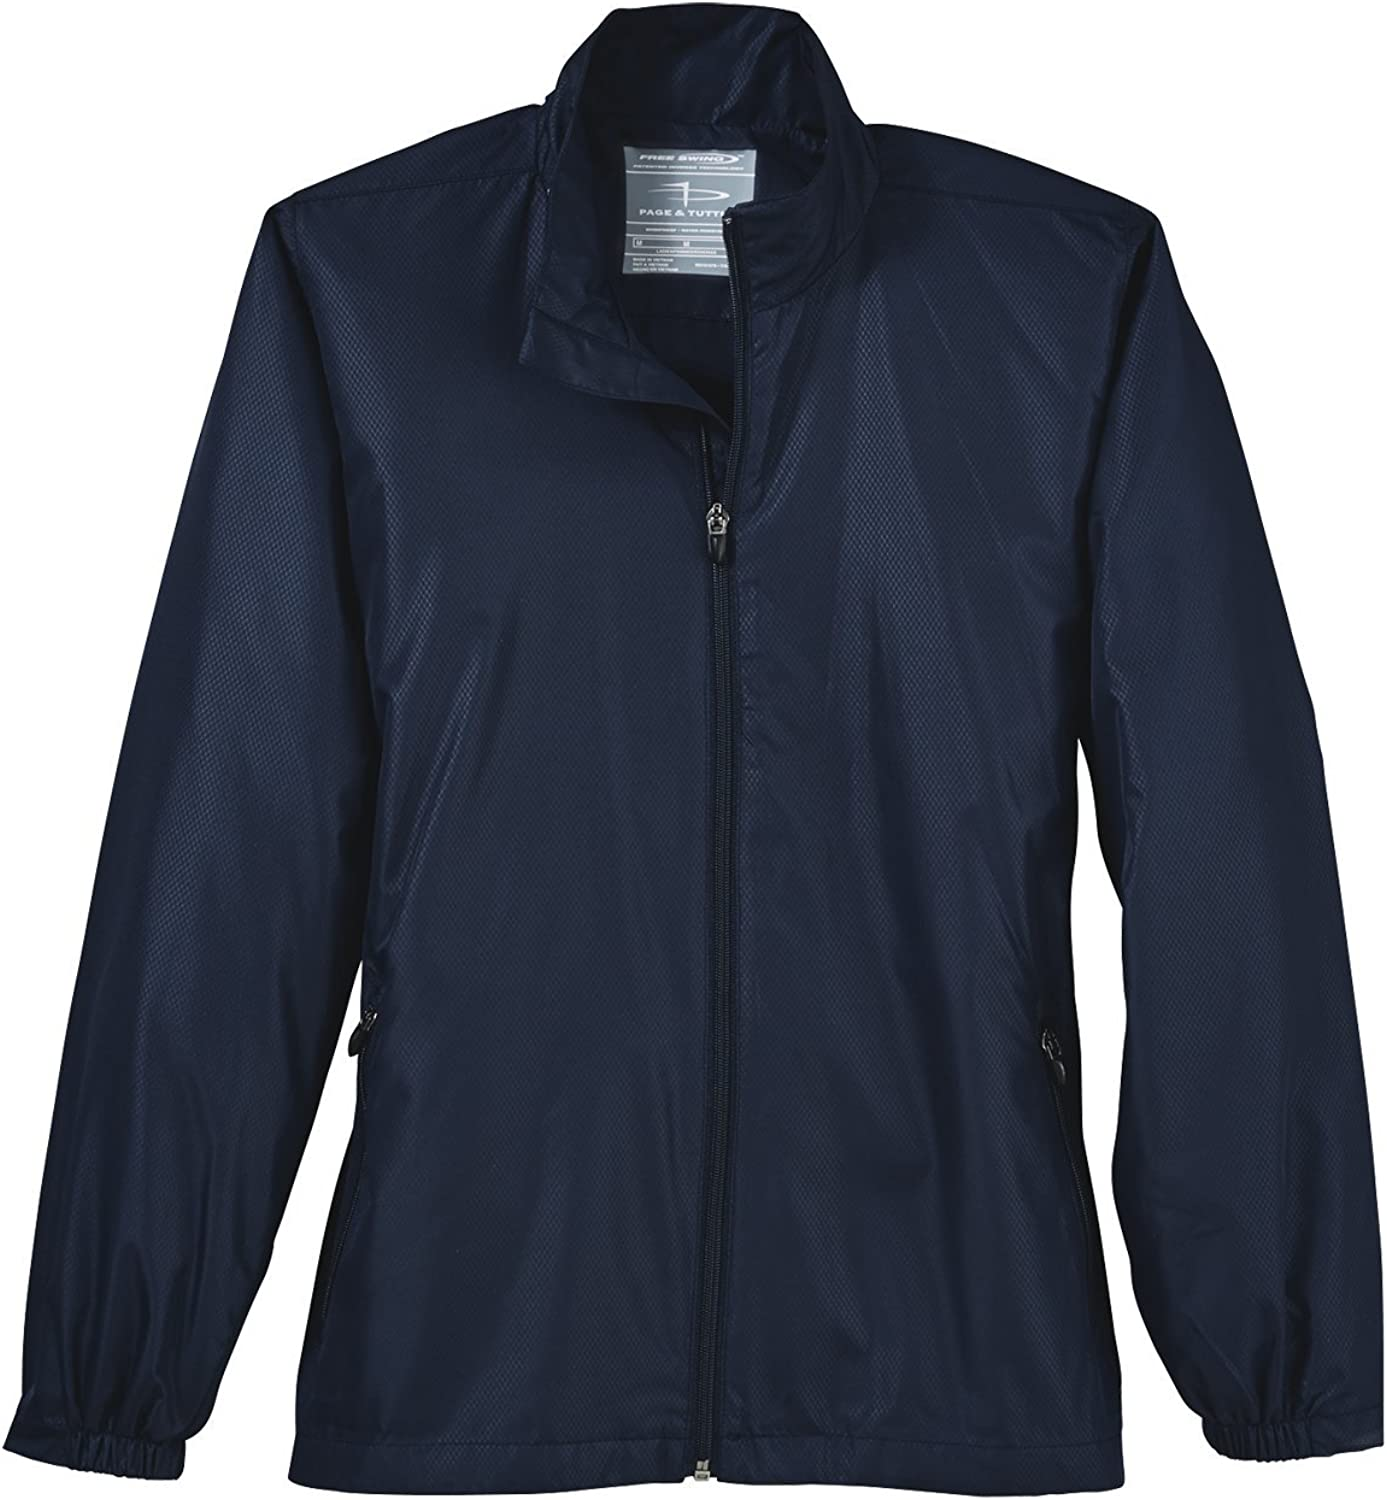 PAGE and TUTTLE Womens Embossed Windbreaker Coats Jackets Outerwear Casual Jacket - Blue